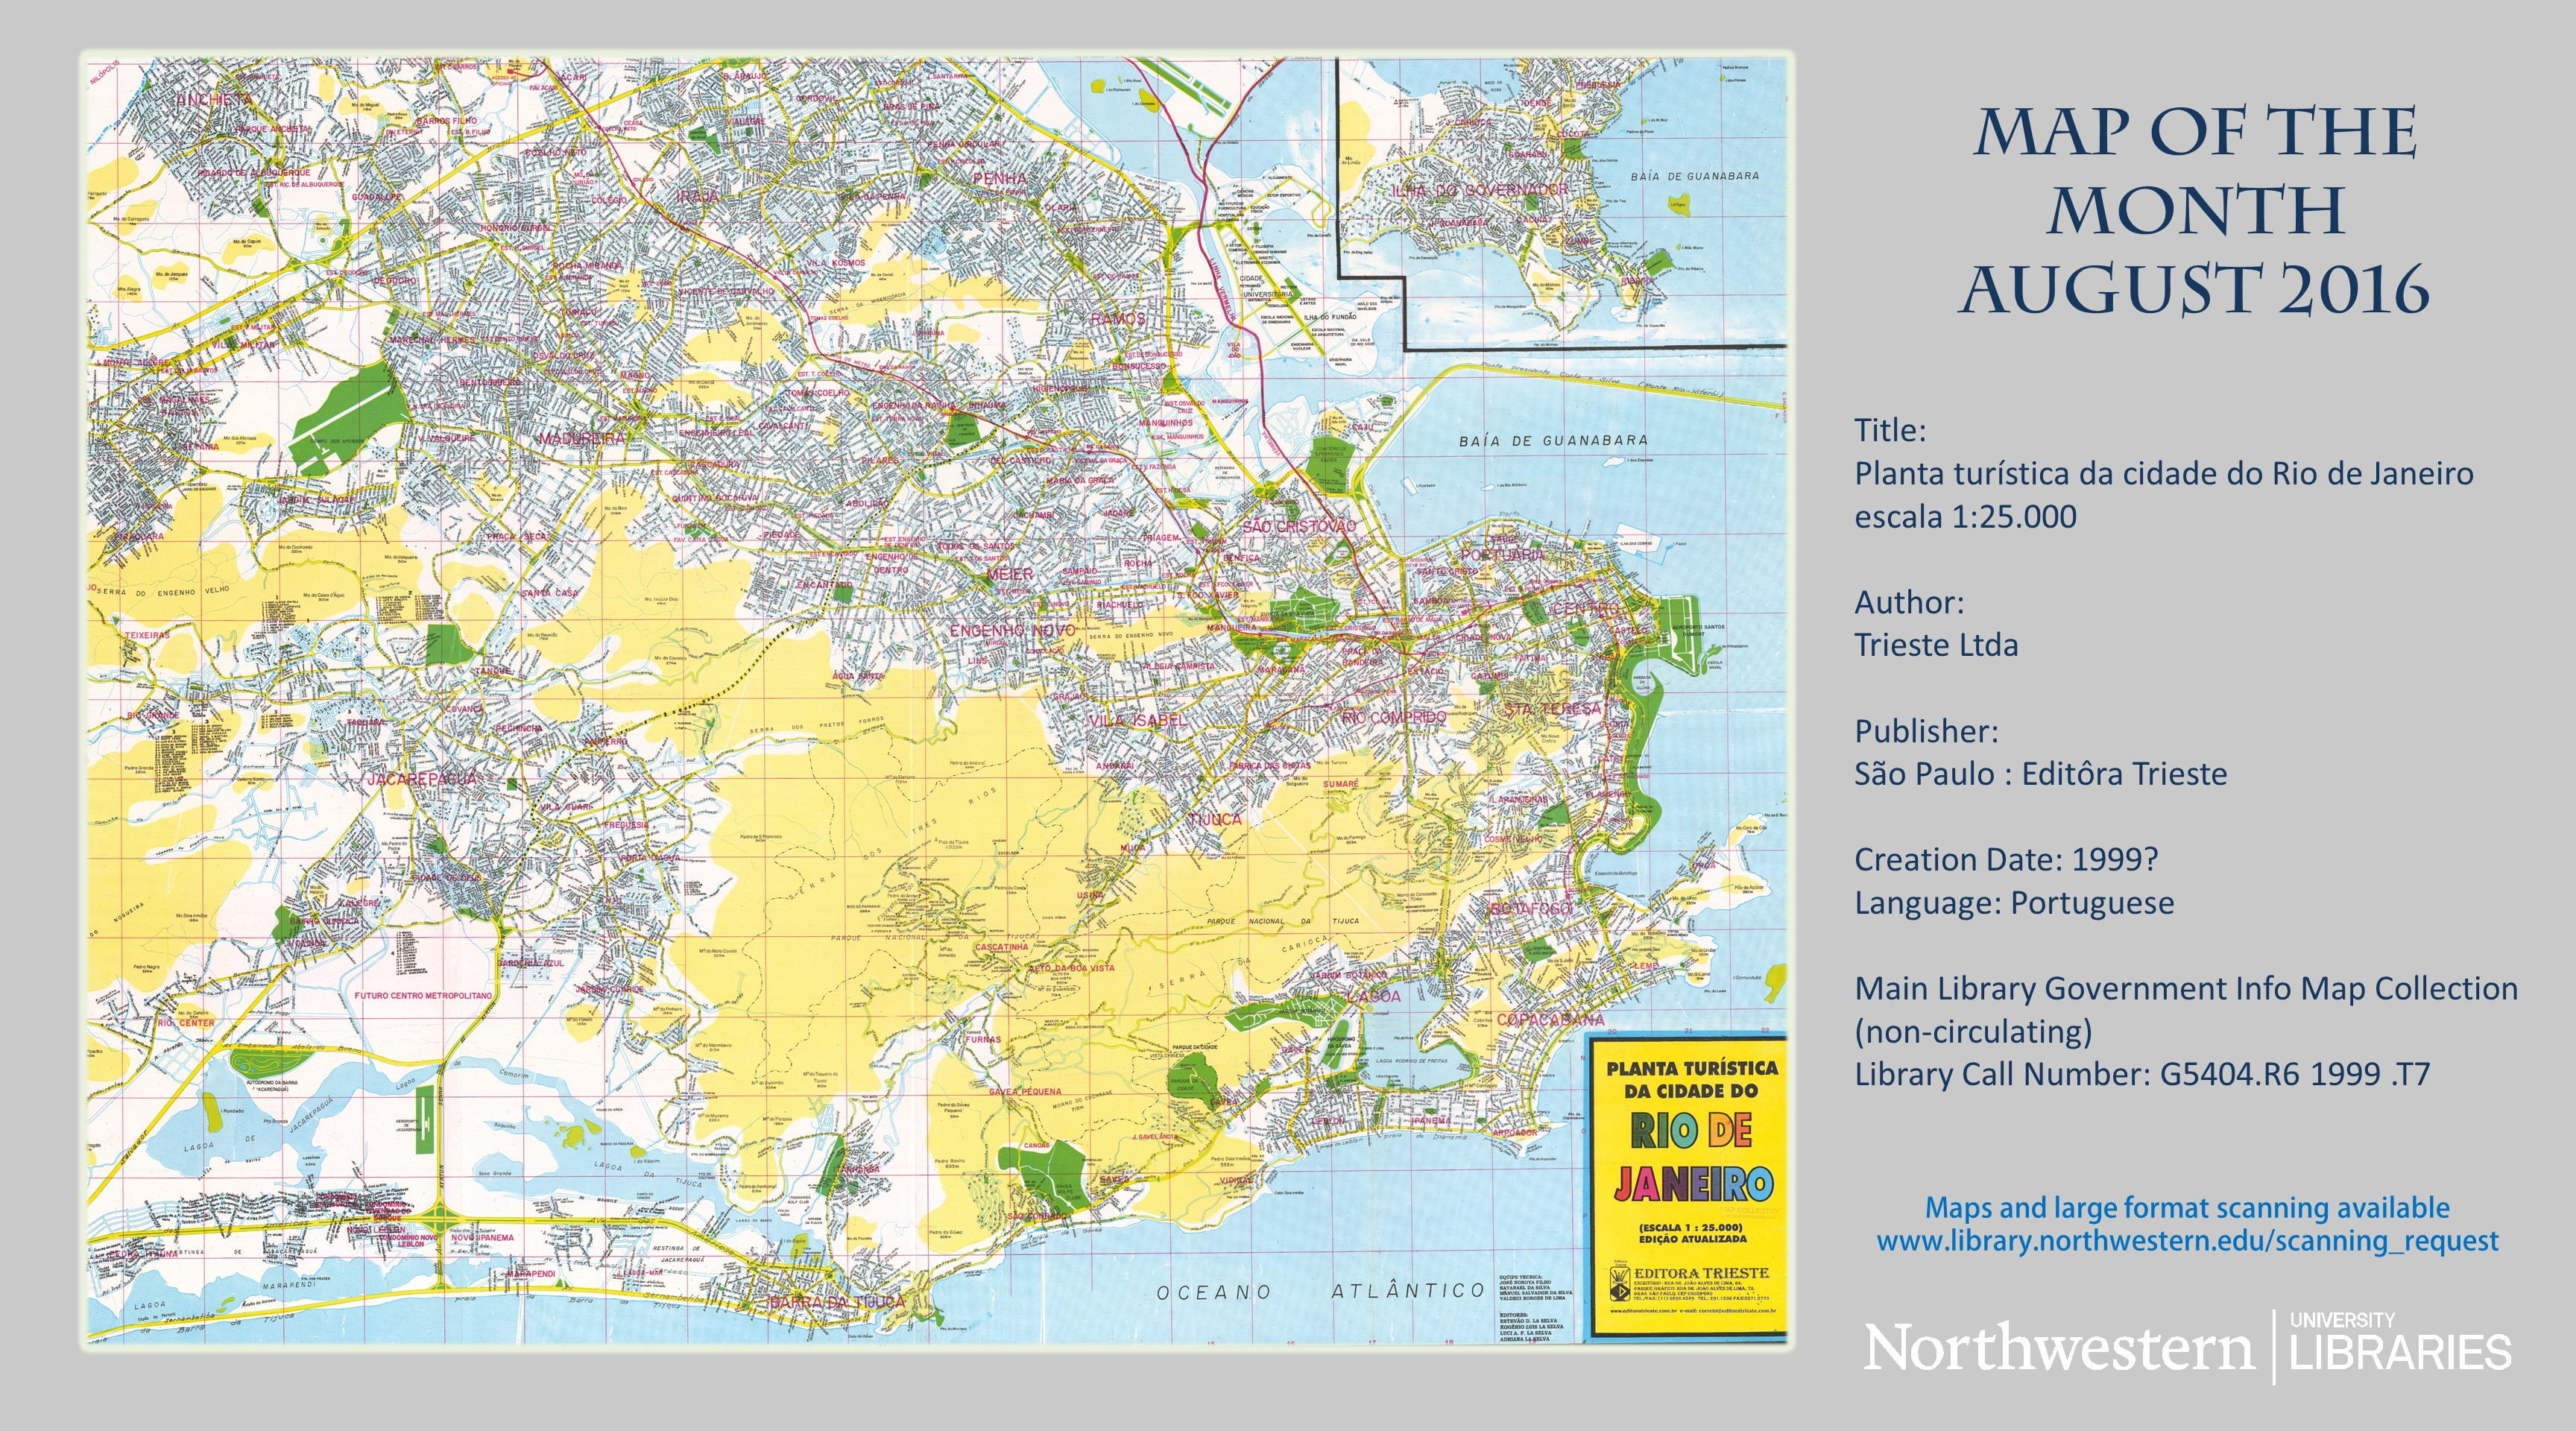 Map of the month archive map large format document scanning planta turistica dcidade do rio de janeiro august 2016 sciox Gallery